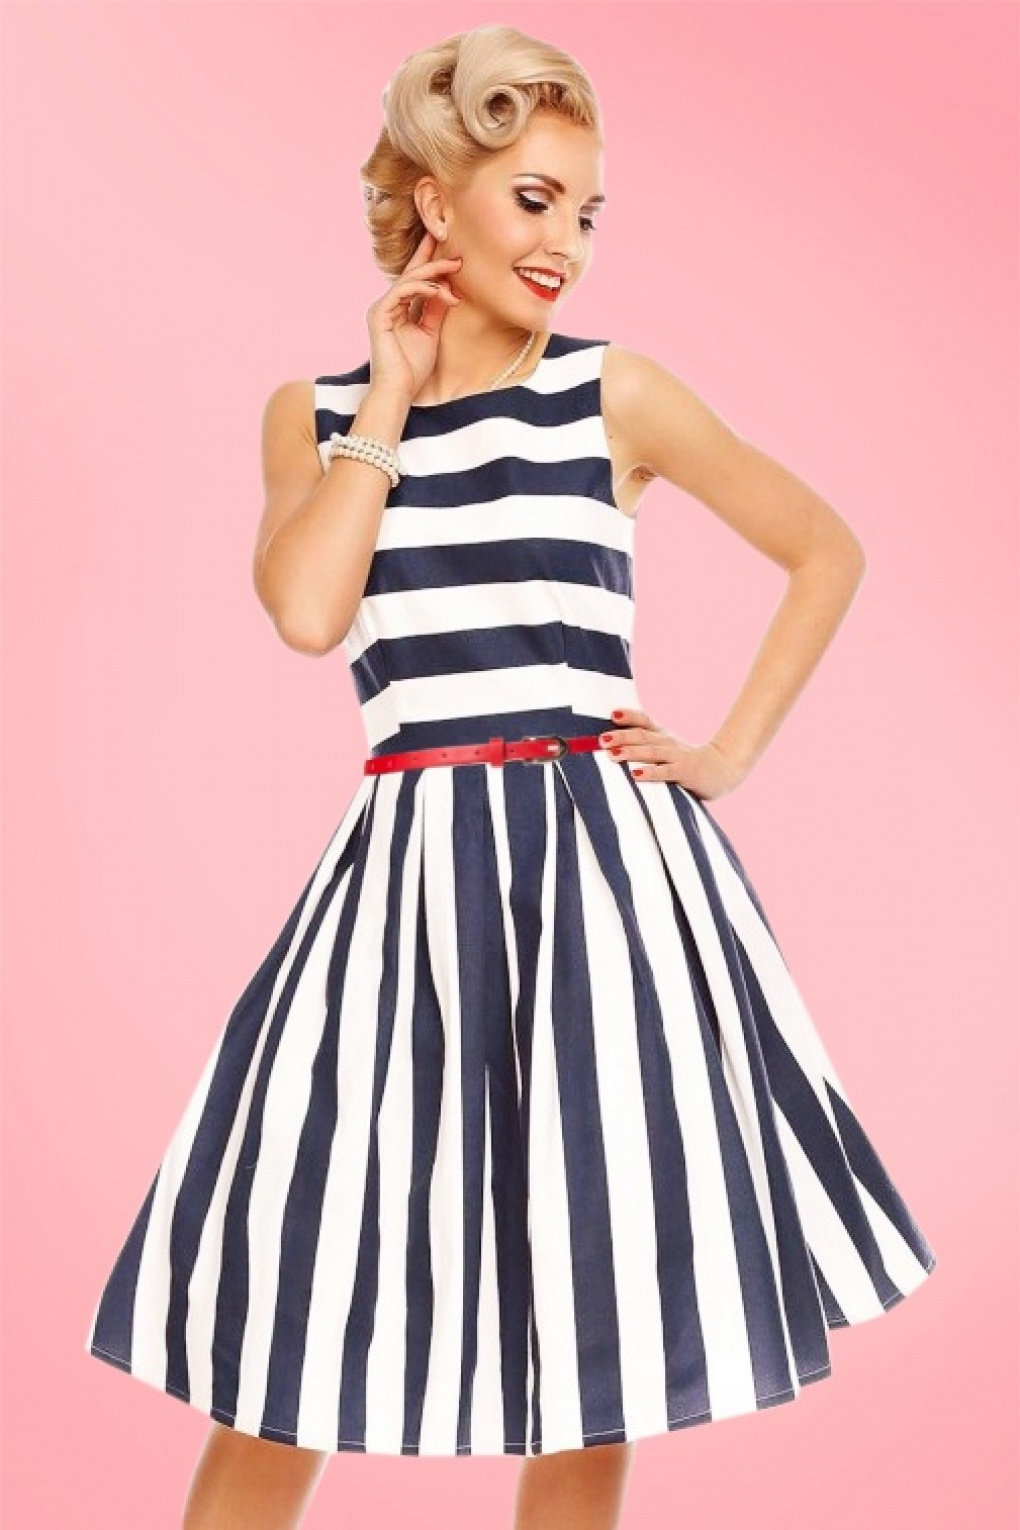 1950s Dress Styles: 8 Popular Vintage Looks 50s Annie Stripes Swing Dress in Navy and White £43.86 AT vintagedancer.com